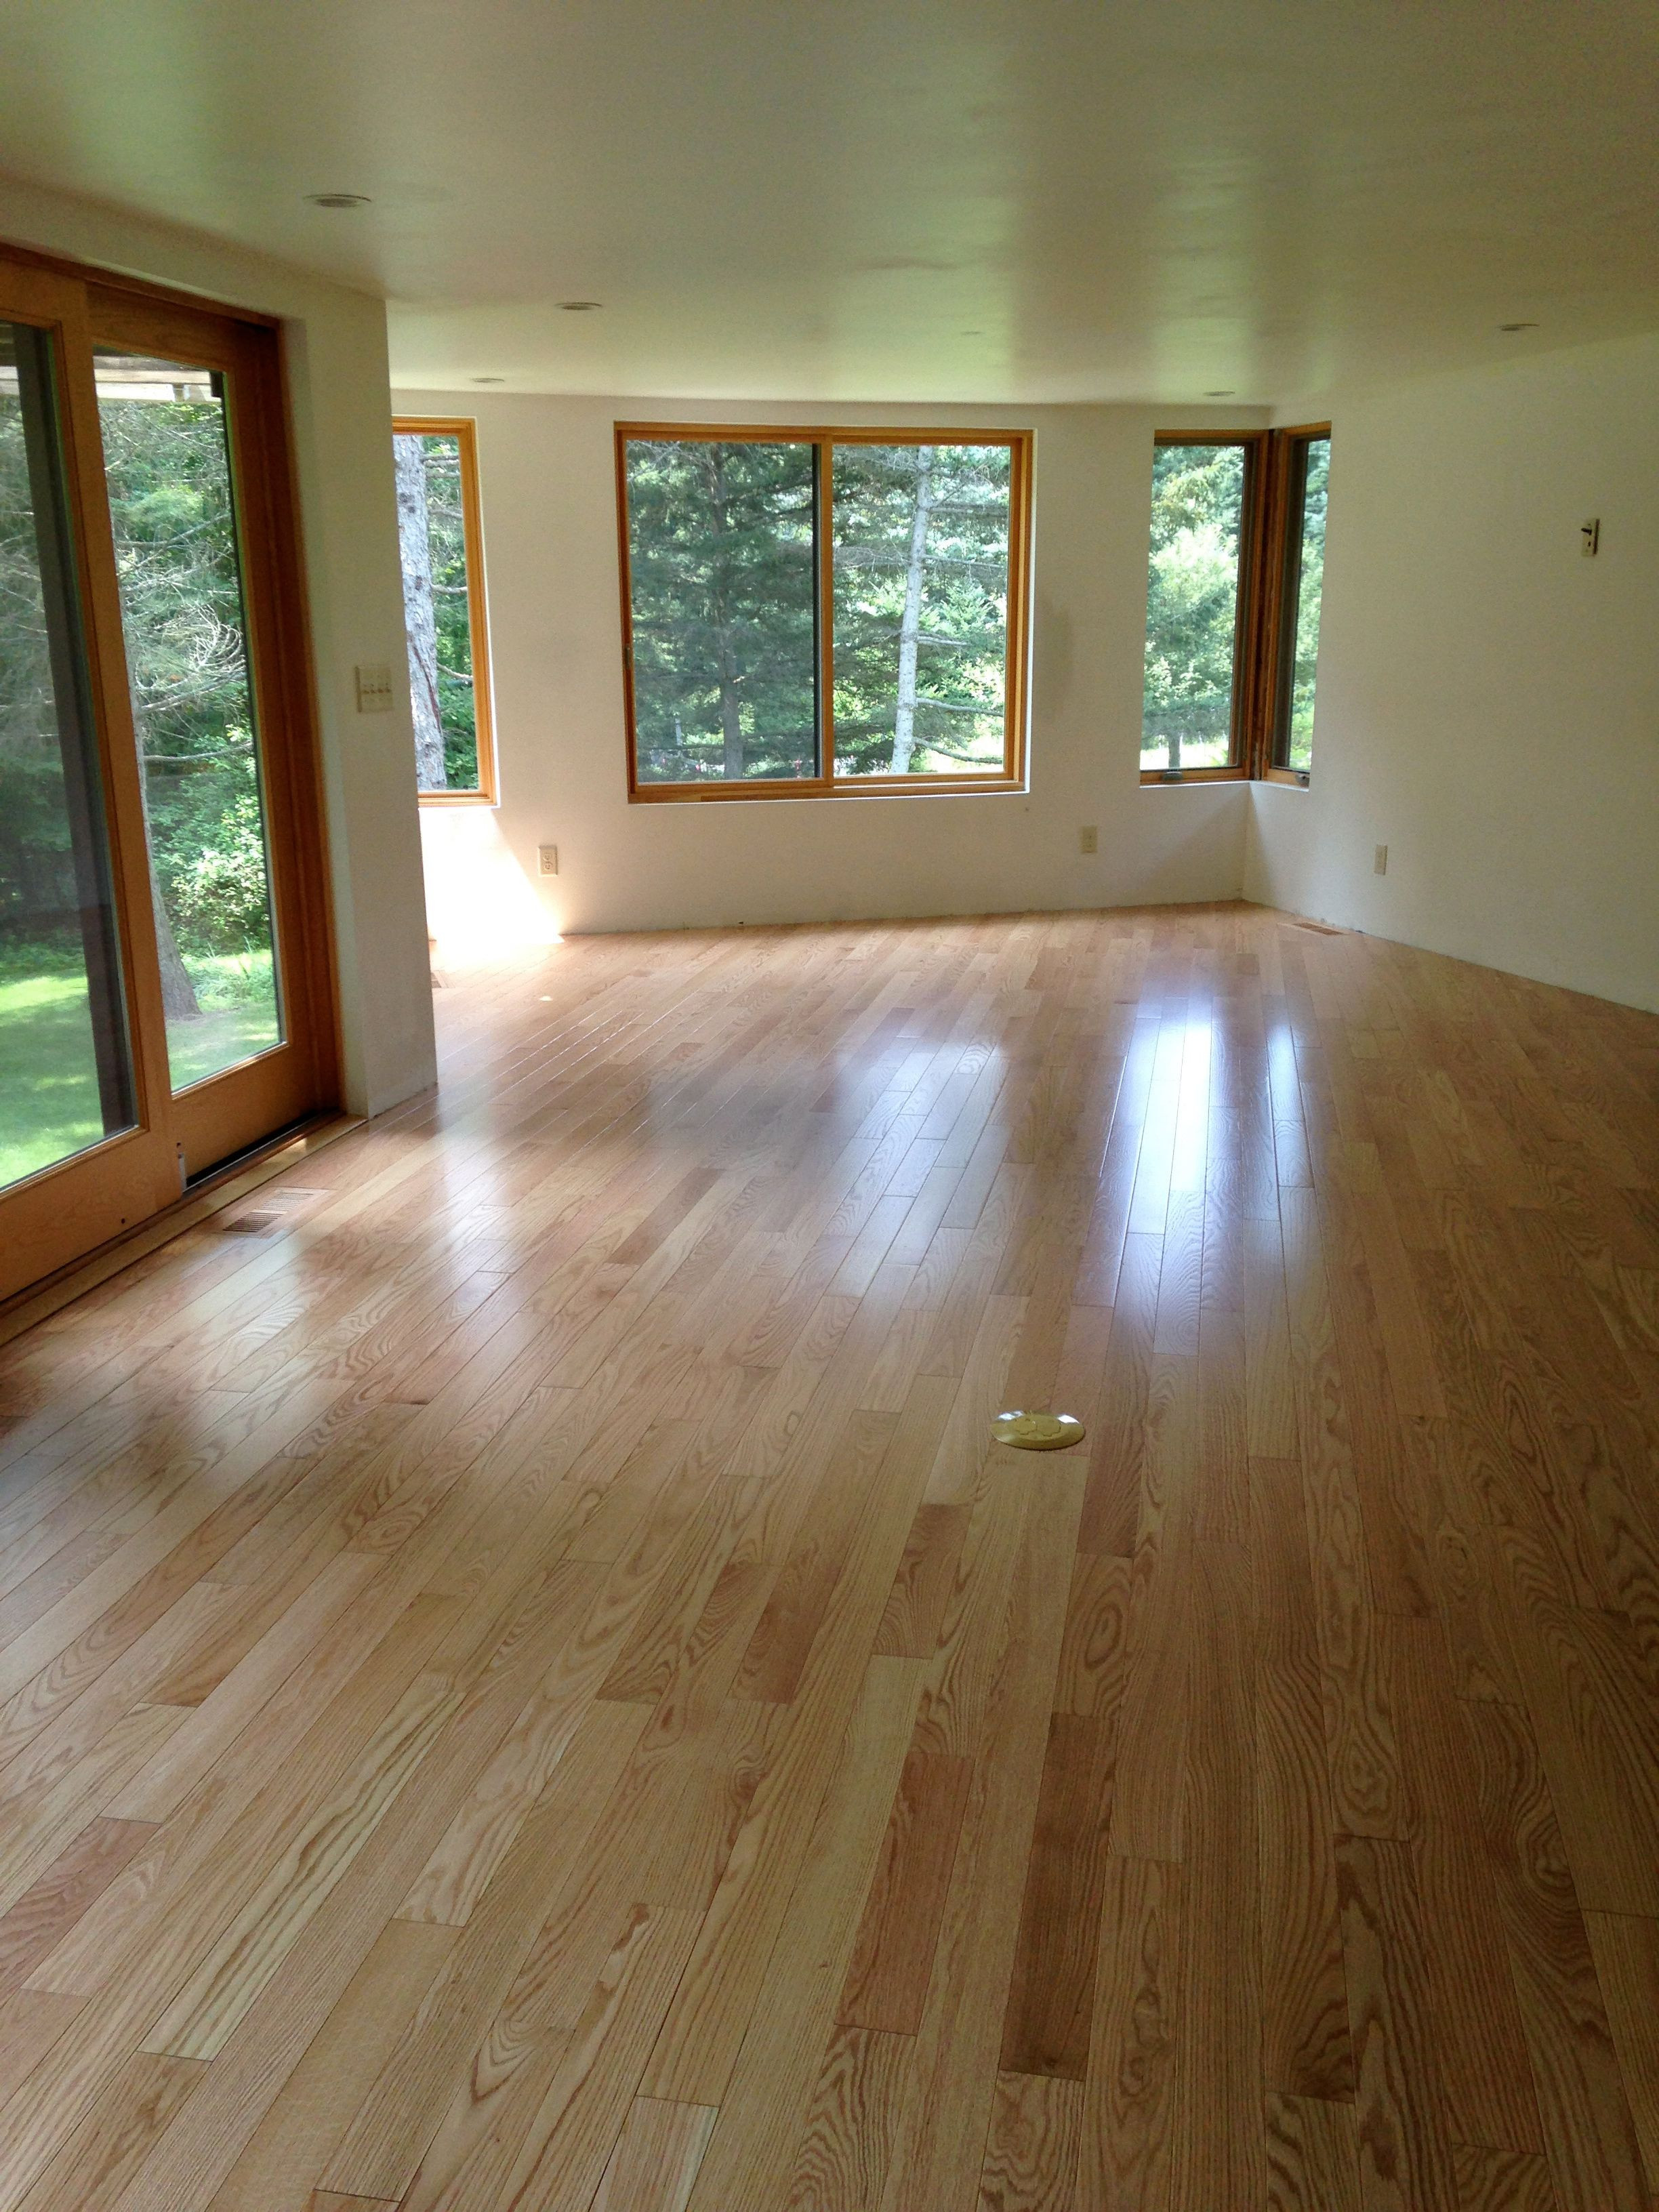 refinished grey hardwood floors of wood floor refinishing toll brothers installed this fantastic wood within hardwood floor refinishing is an affordable way to spruce up your space without a full replacement